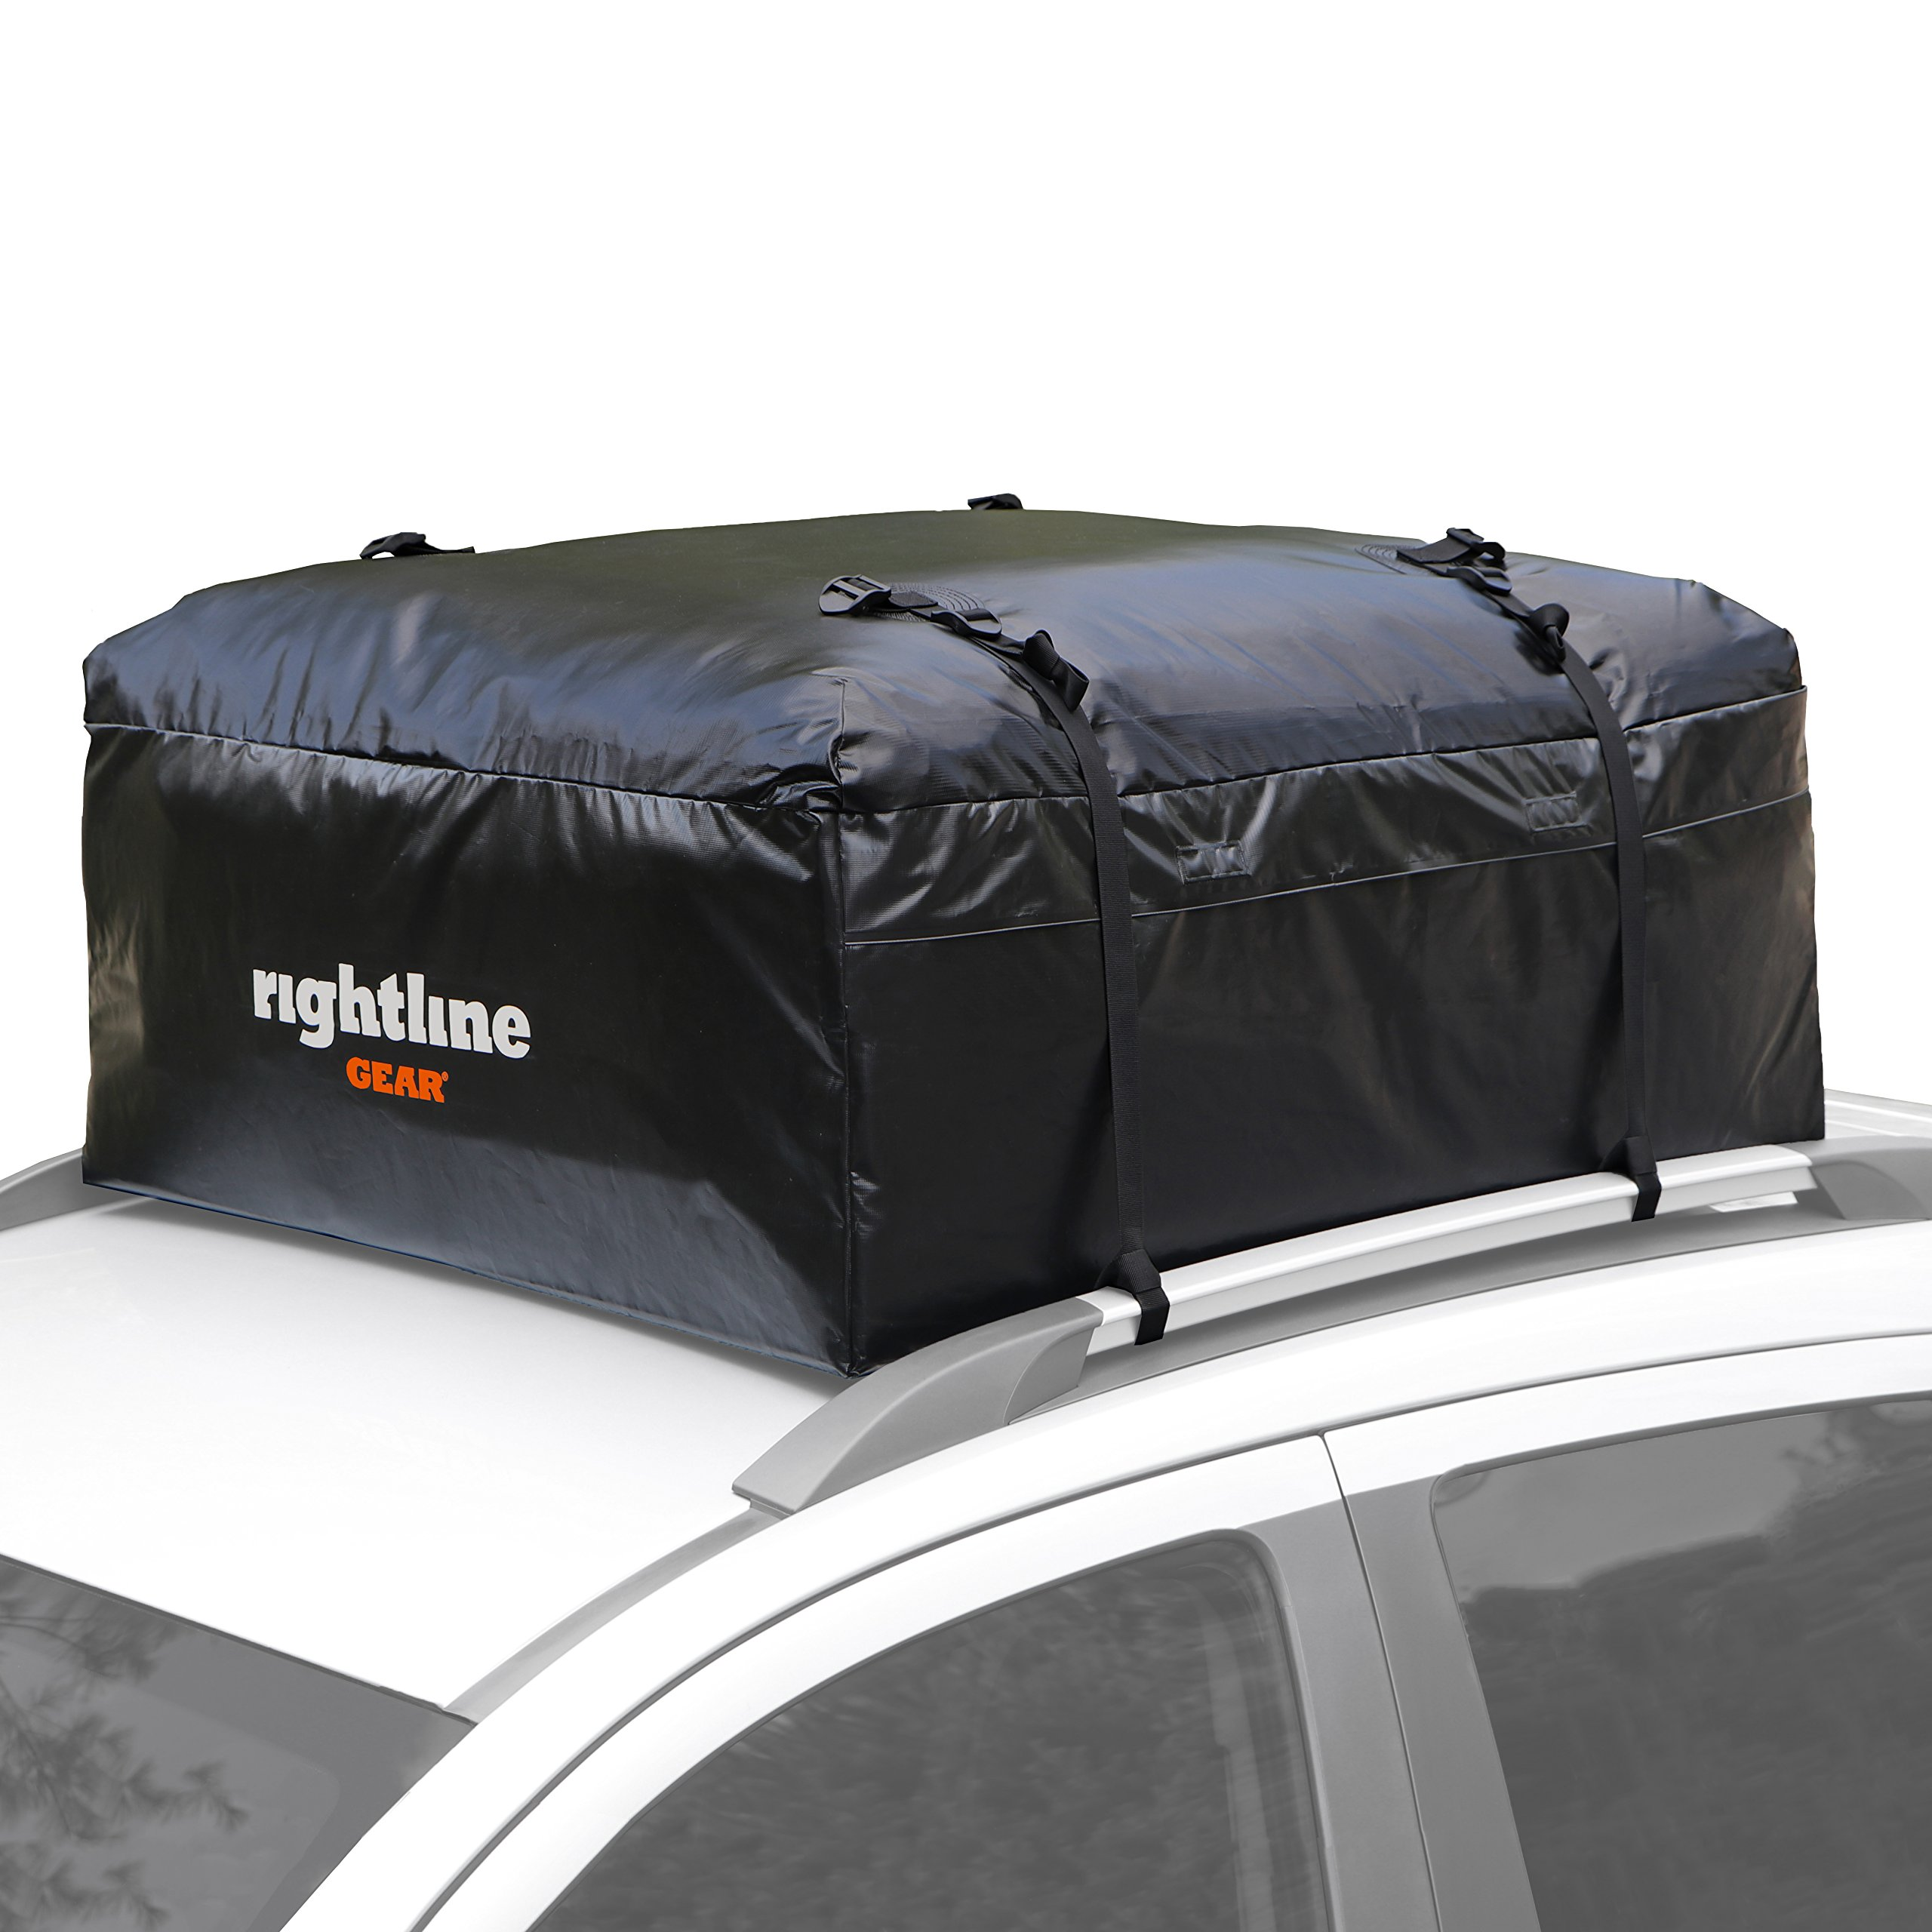 Rightline Gear Ace 1 Car Top Carrier, 12 cu ft, Weatherproof, Attaches With or Without Roof Rack by Rightline Gear